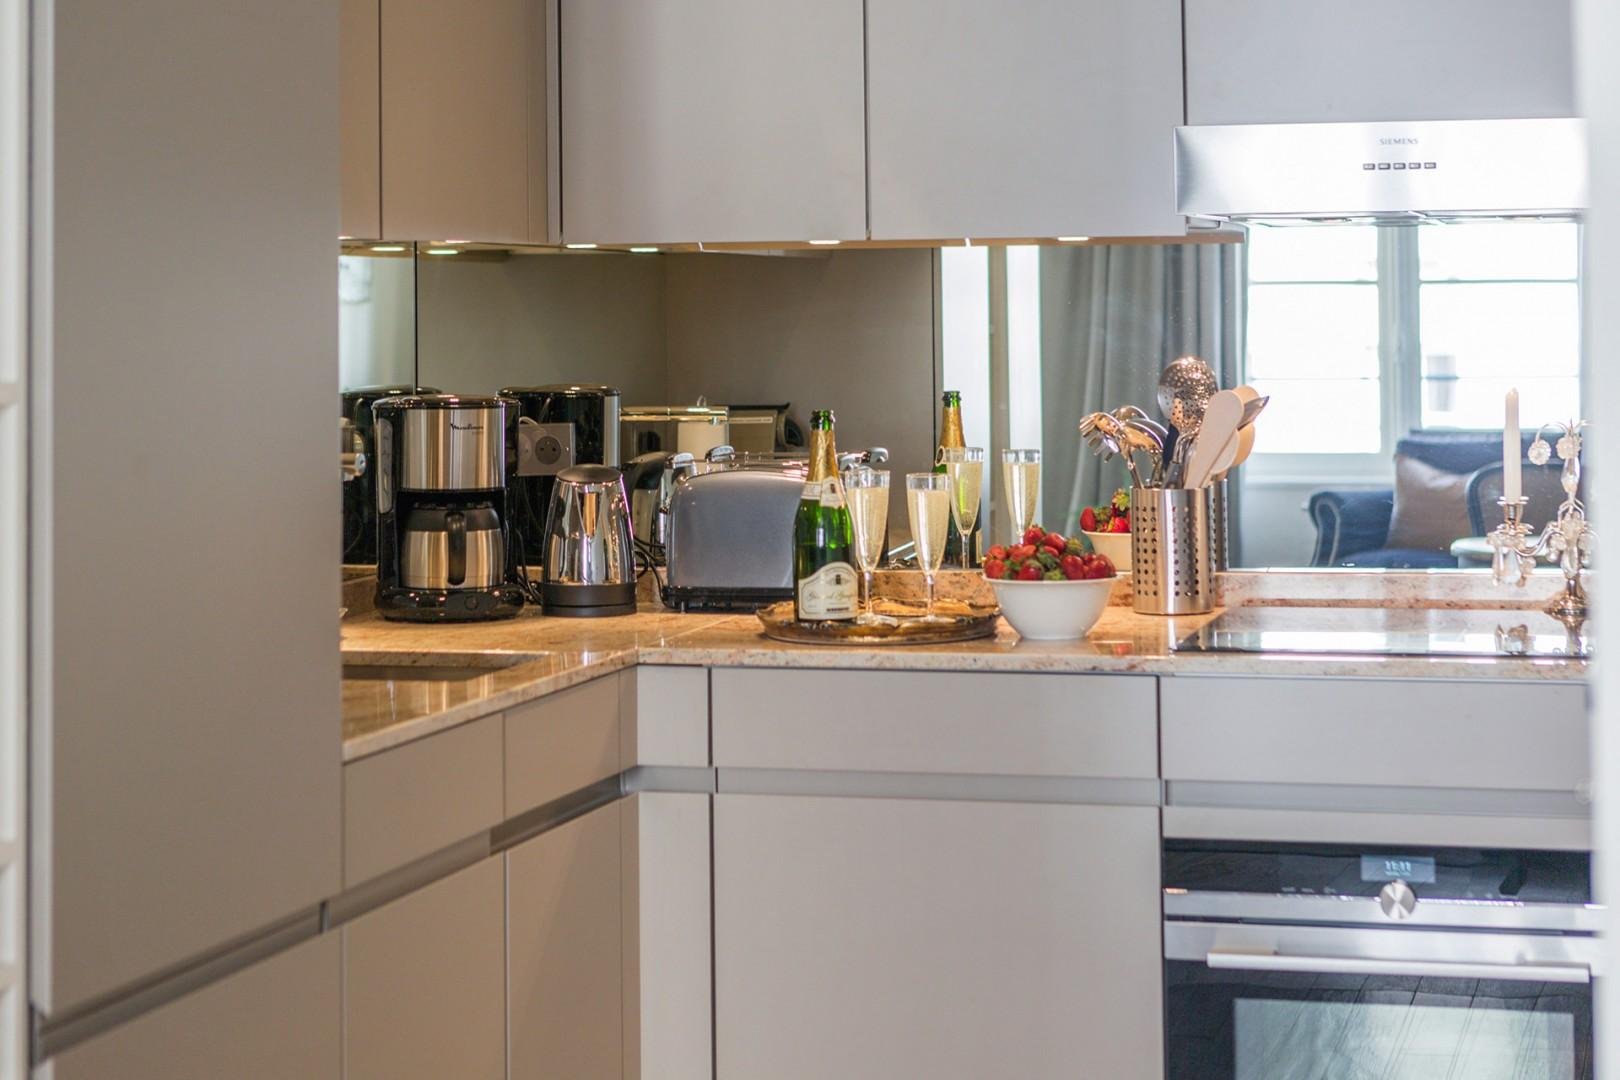 The fully equipped kitchen has everything to prepare home-cooked meals.